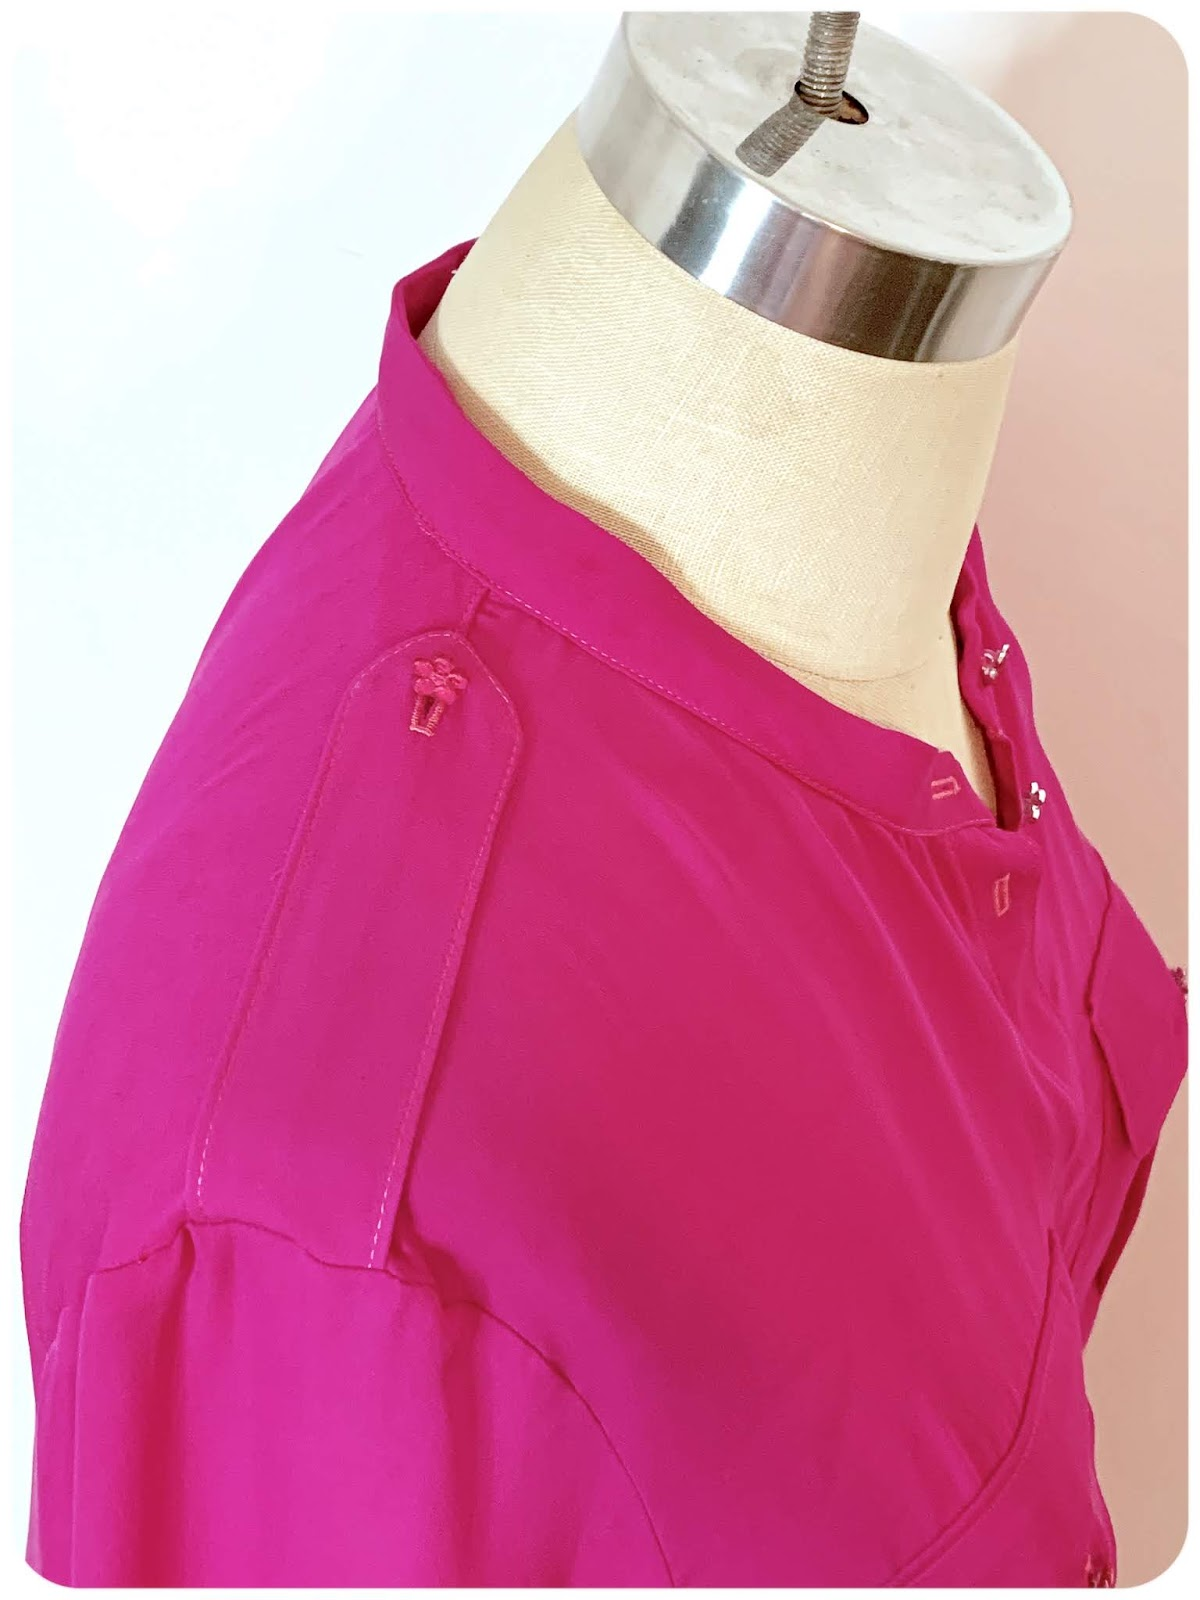 Simplicity 8830 - Fuchsia Silk Double Georgette Shirt! -- Erica Bunker DIY Style!